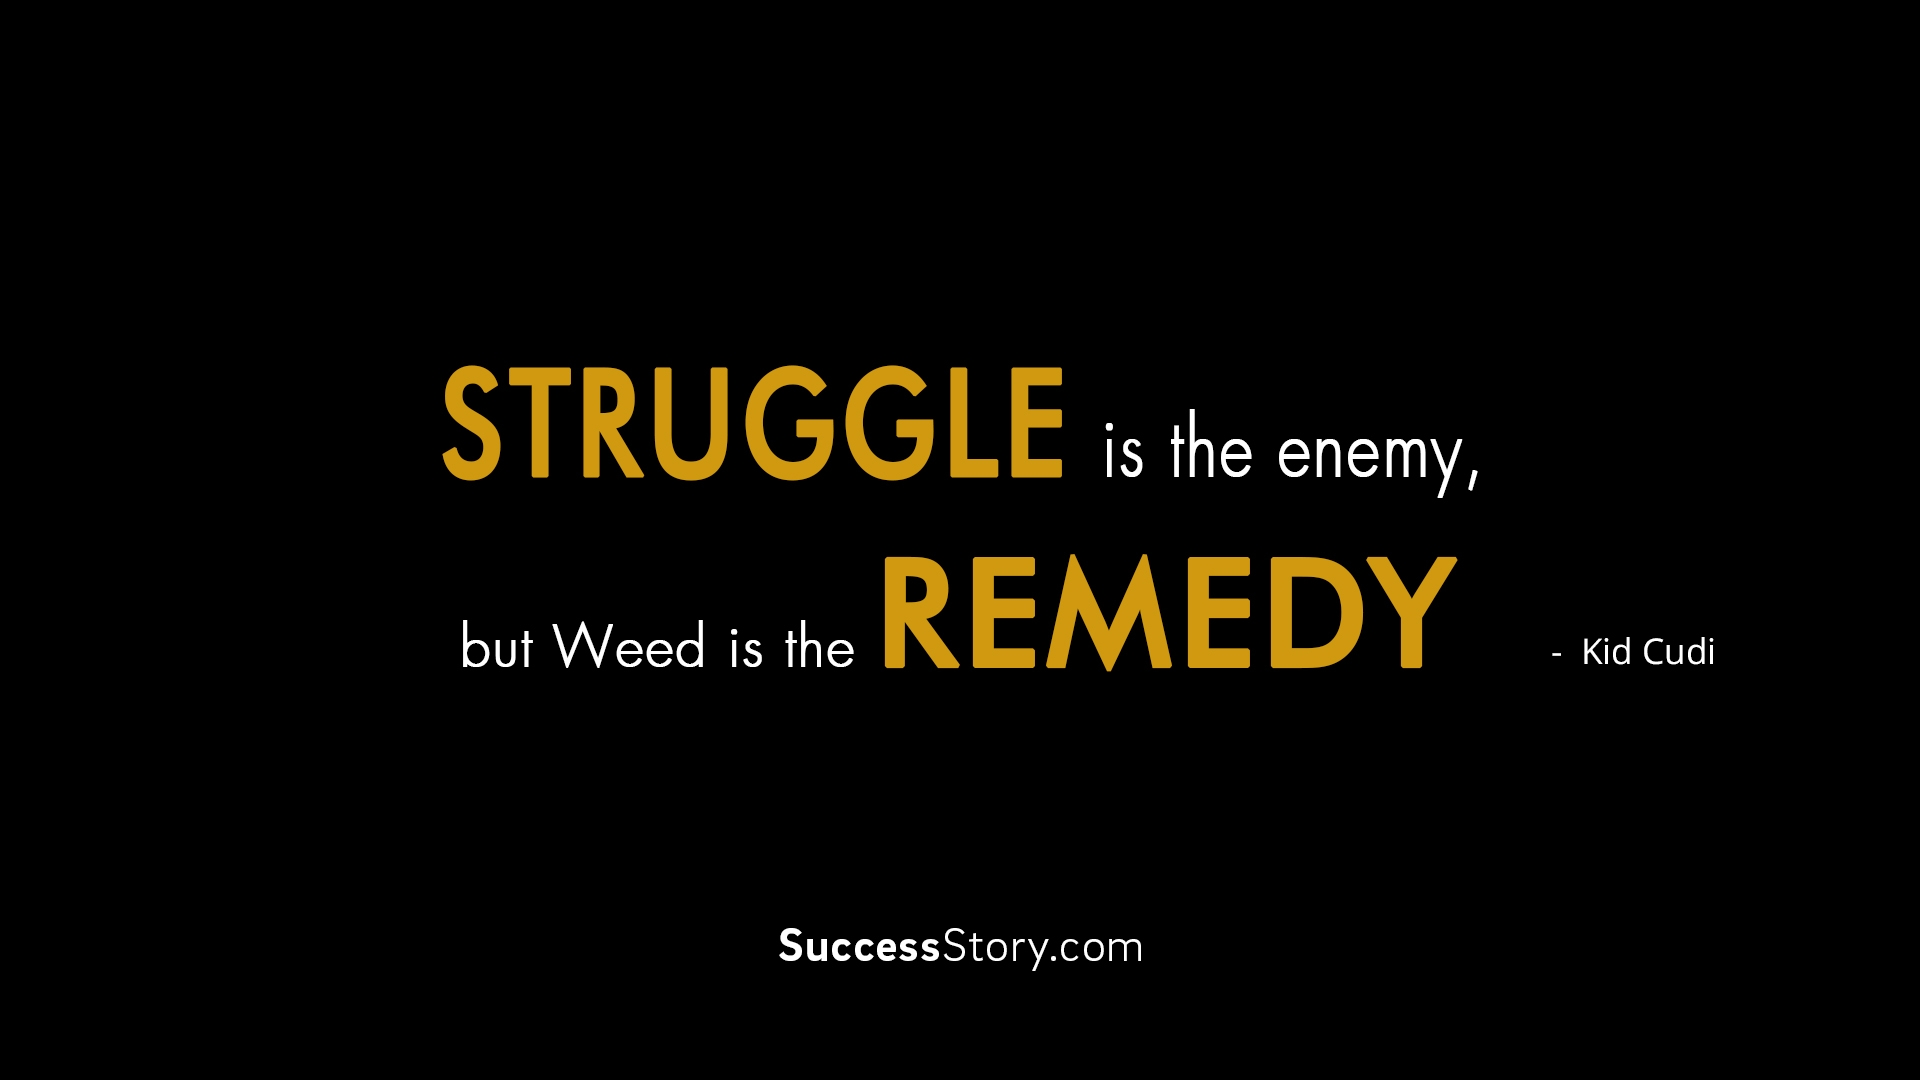 Struggle is the enemy